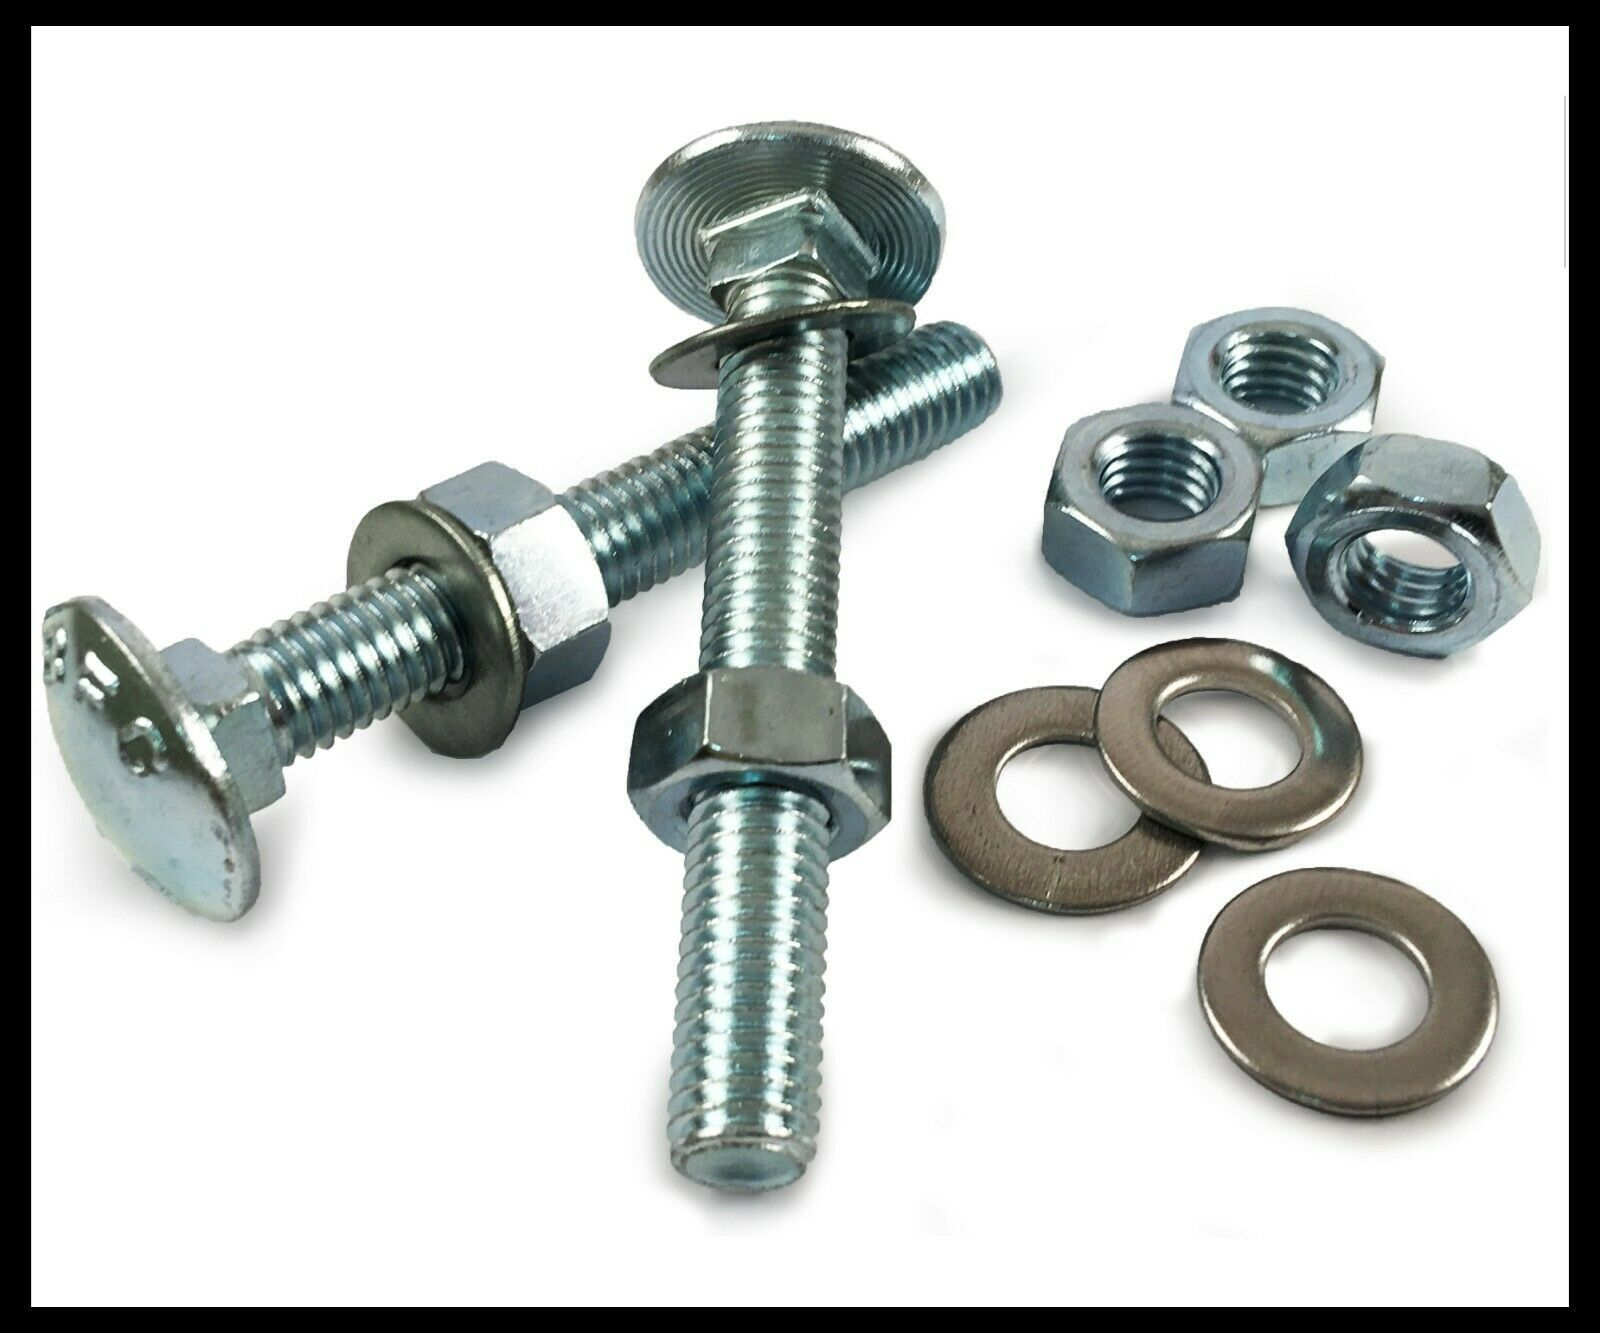 Pack of 50 x M6 x 70mm ZINC Cup Square Carriage Bolt Coach Screws with HEX Full Nuts